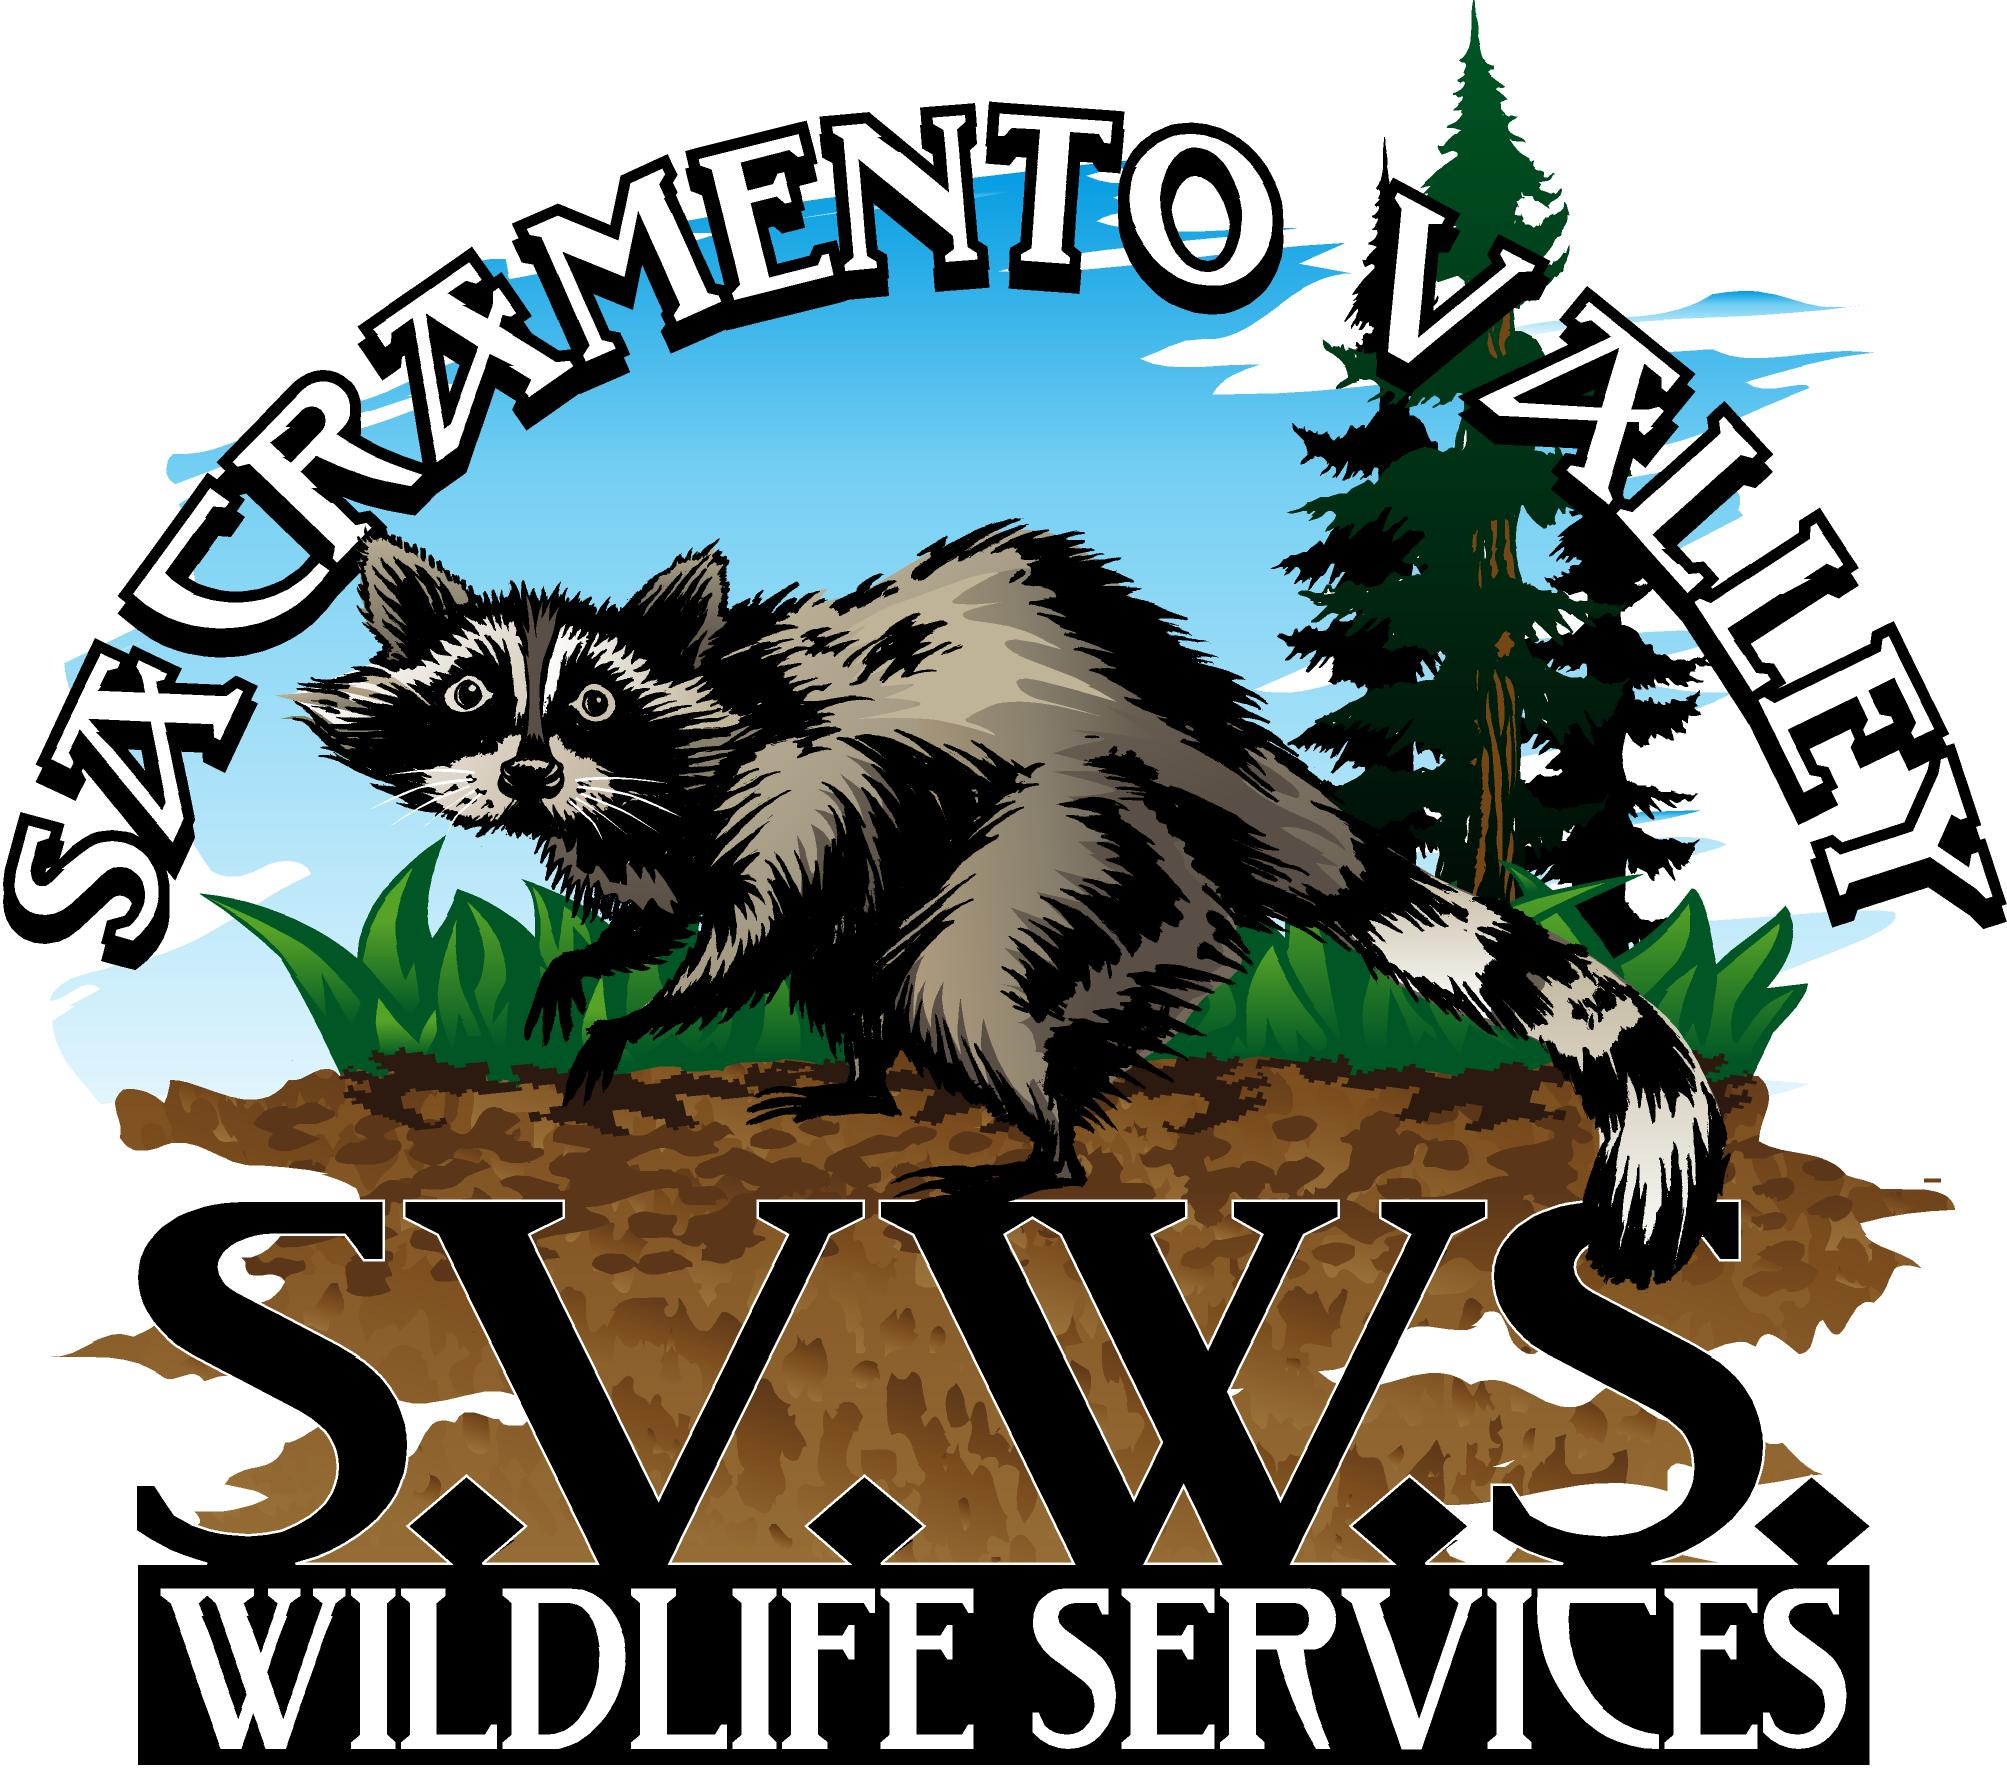 Logo for Sacramento Valley Wildlife Services such as skunk removal